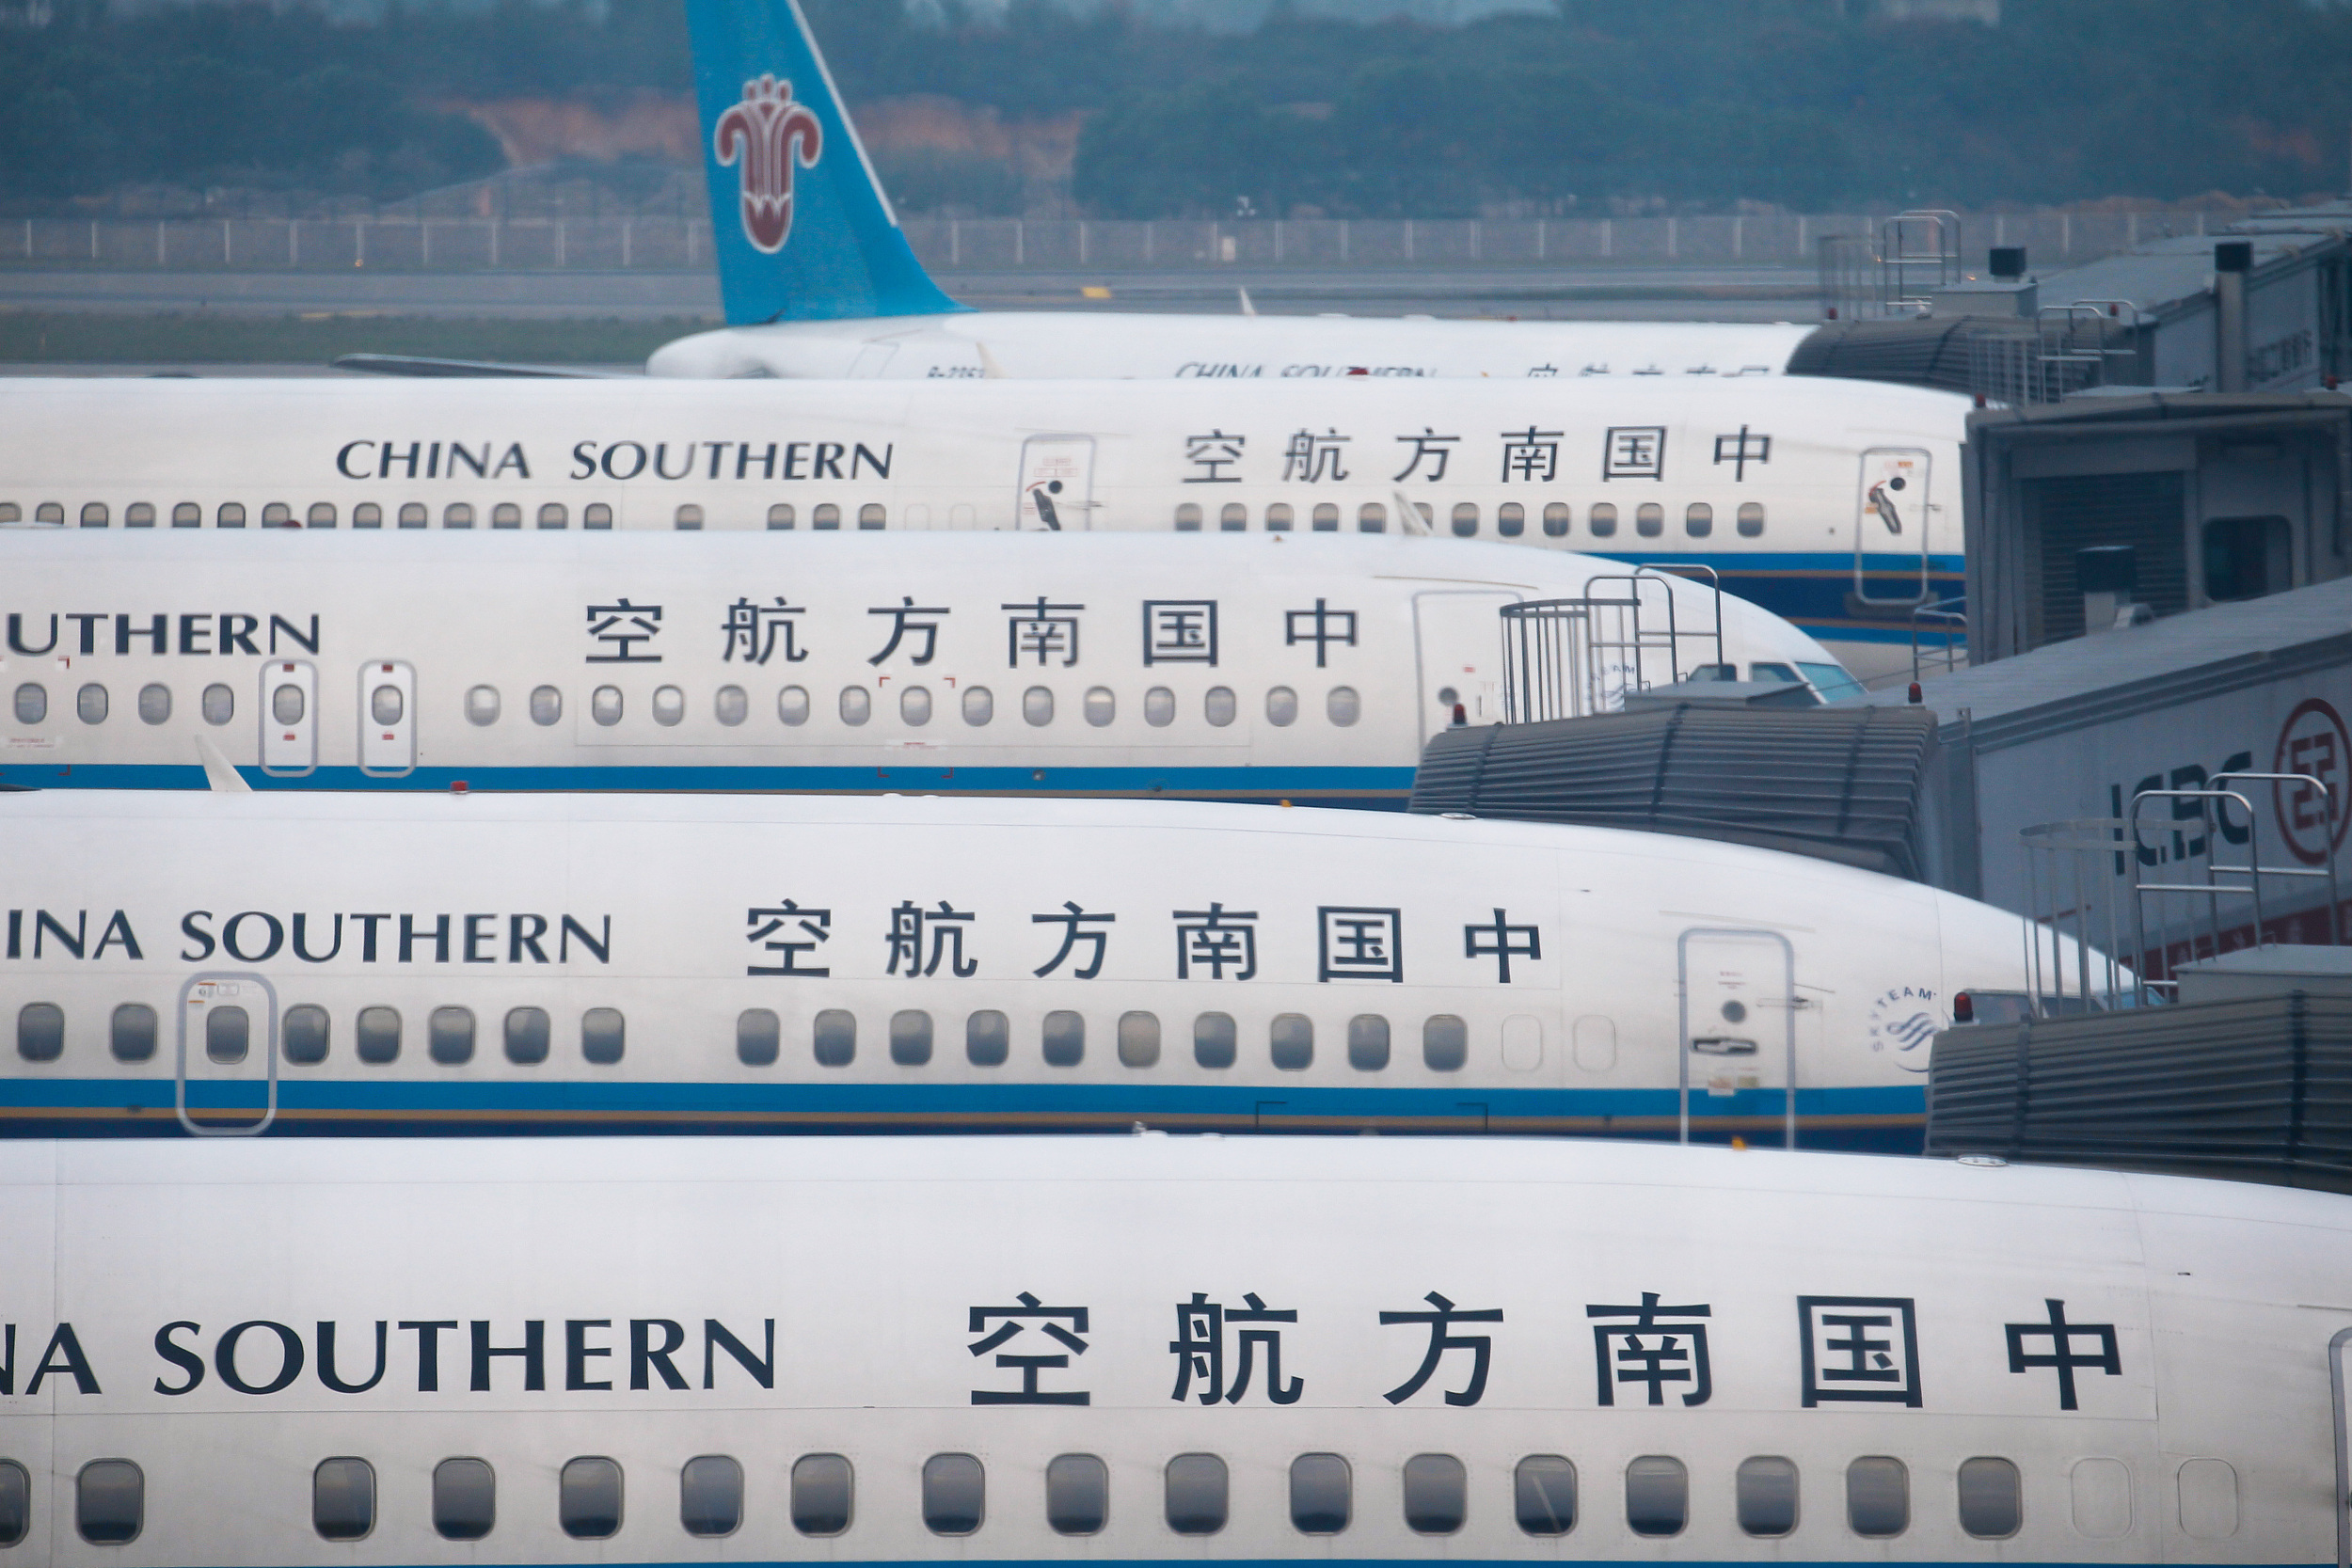 China Southern airliners sit in Guangzhou Baiyun International Airport in February 2011. Photo: VCG